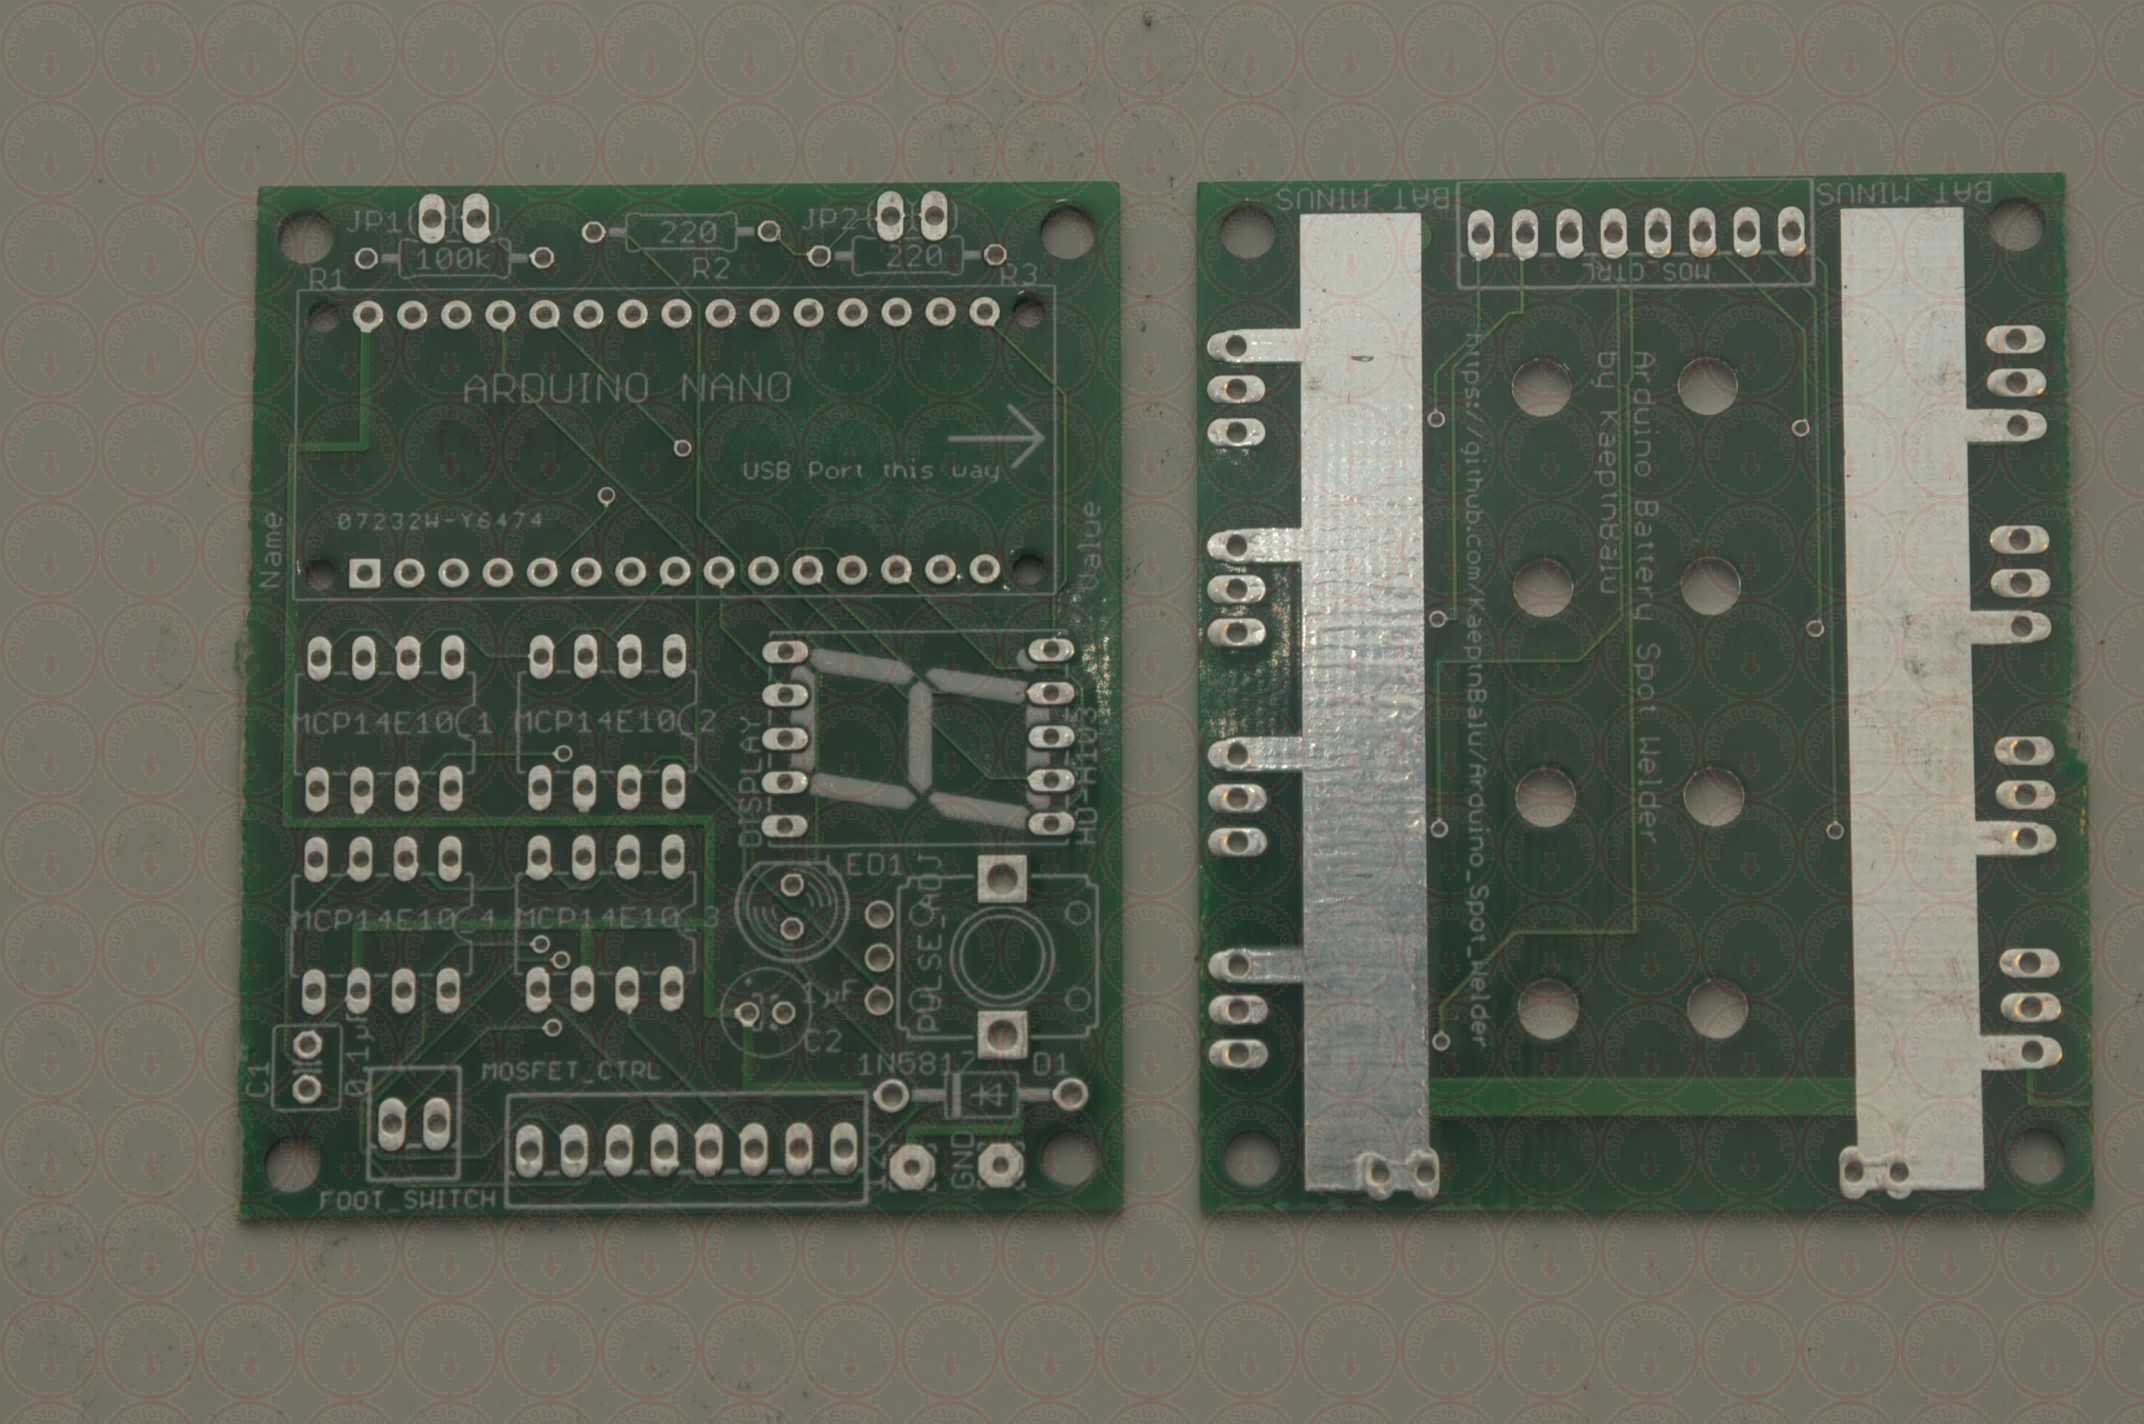 QuietStove PCB Board for Arduino Spot Welder - Get Yours Today